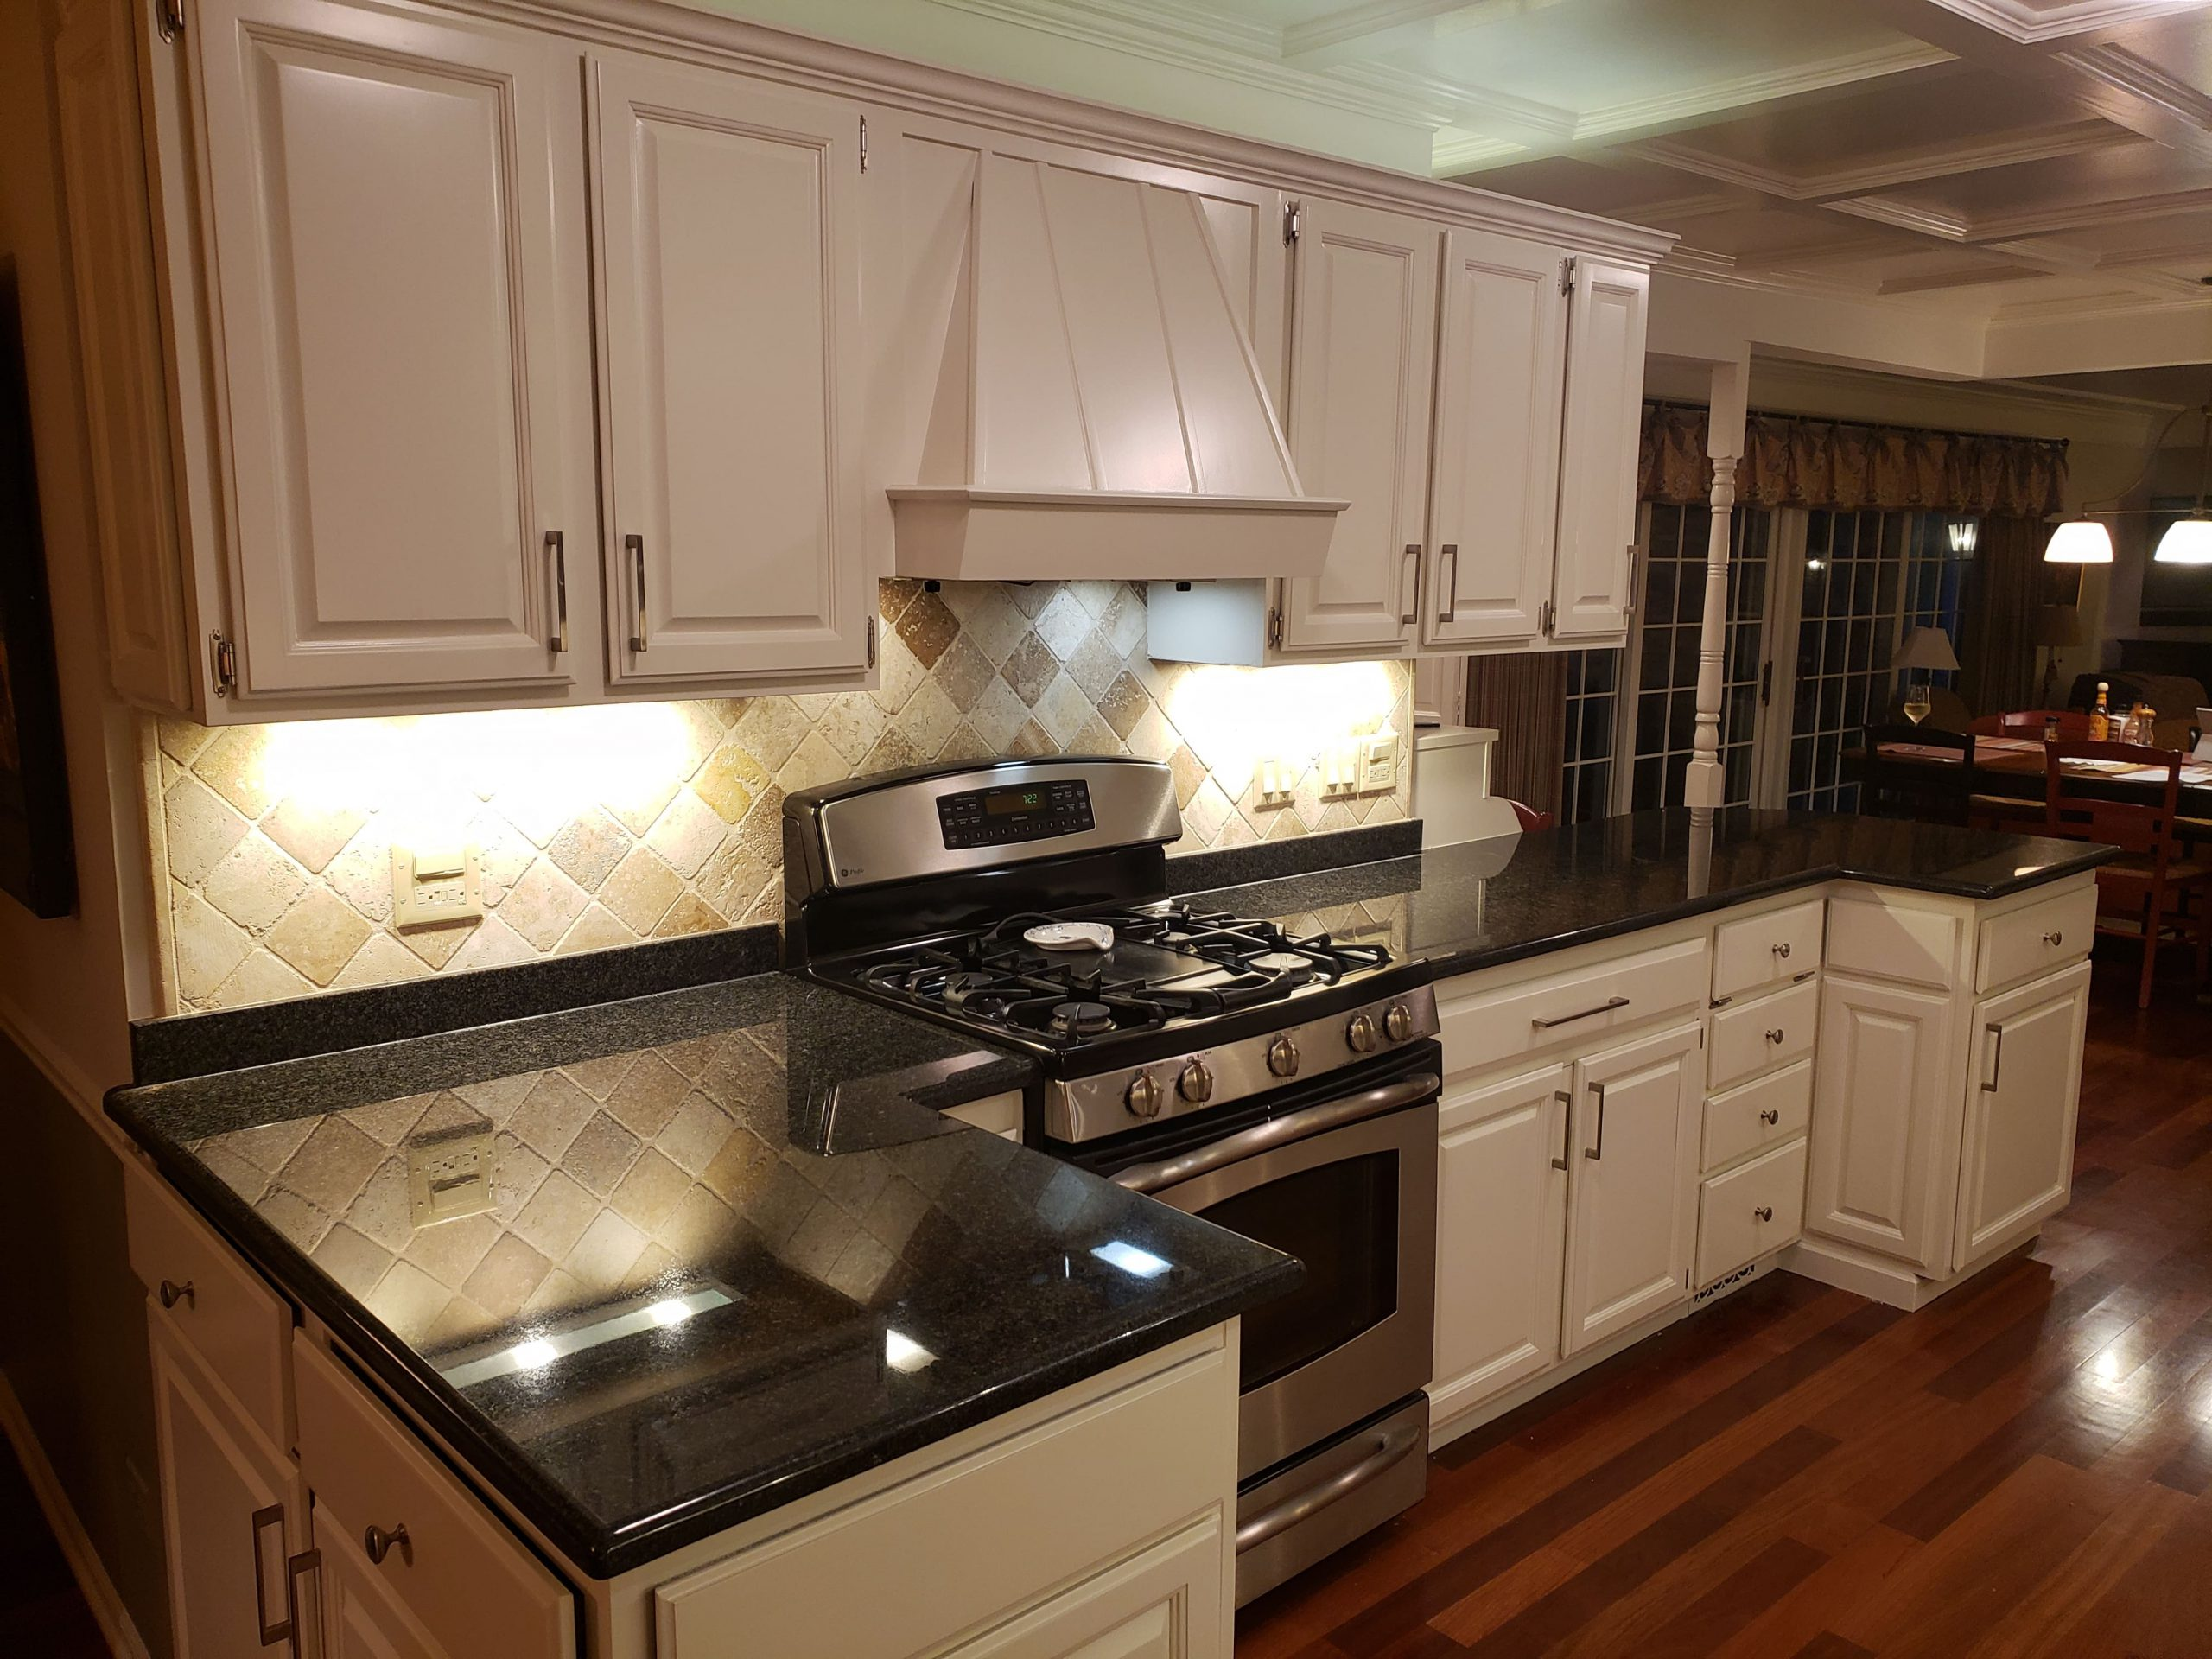 painting-services-northbrook-interior-painters-northbrook